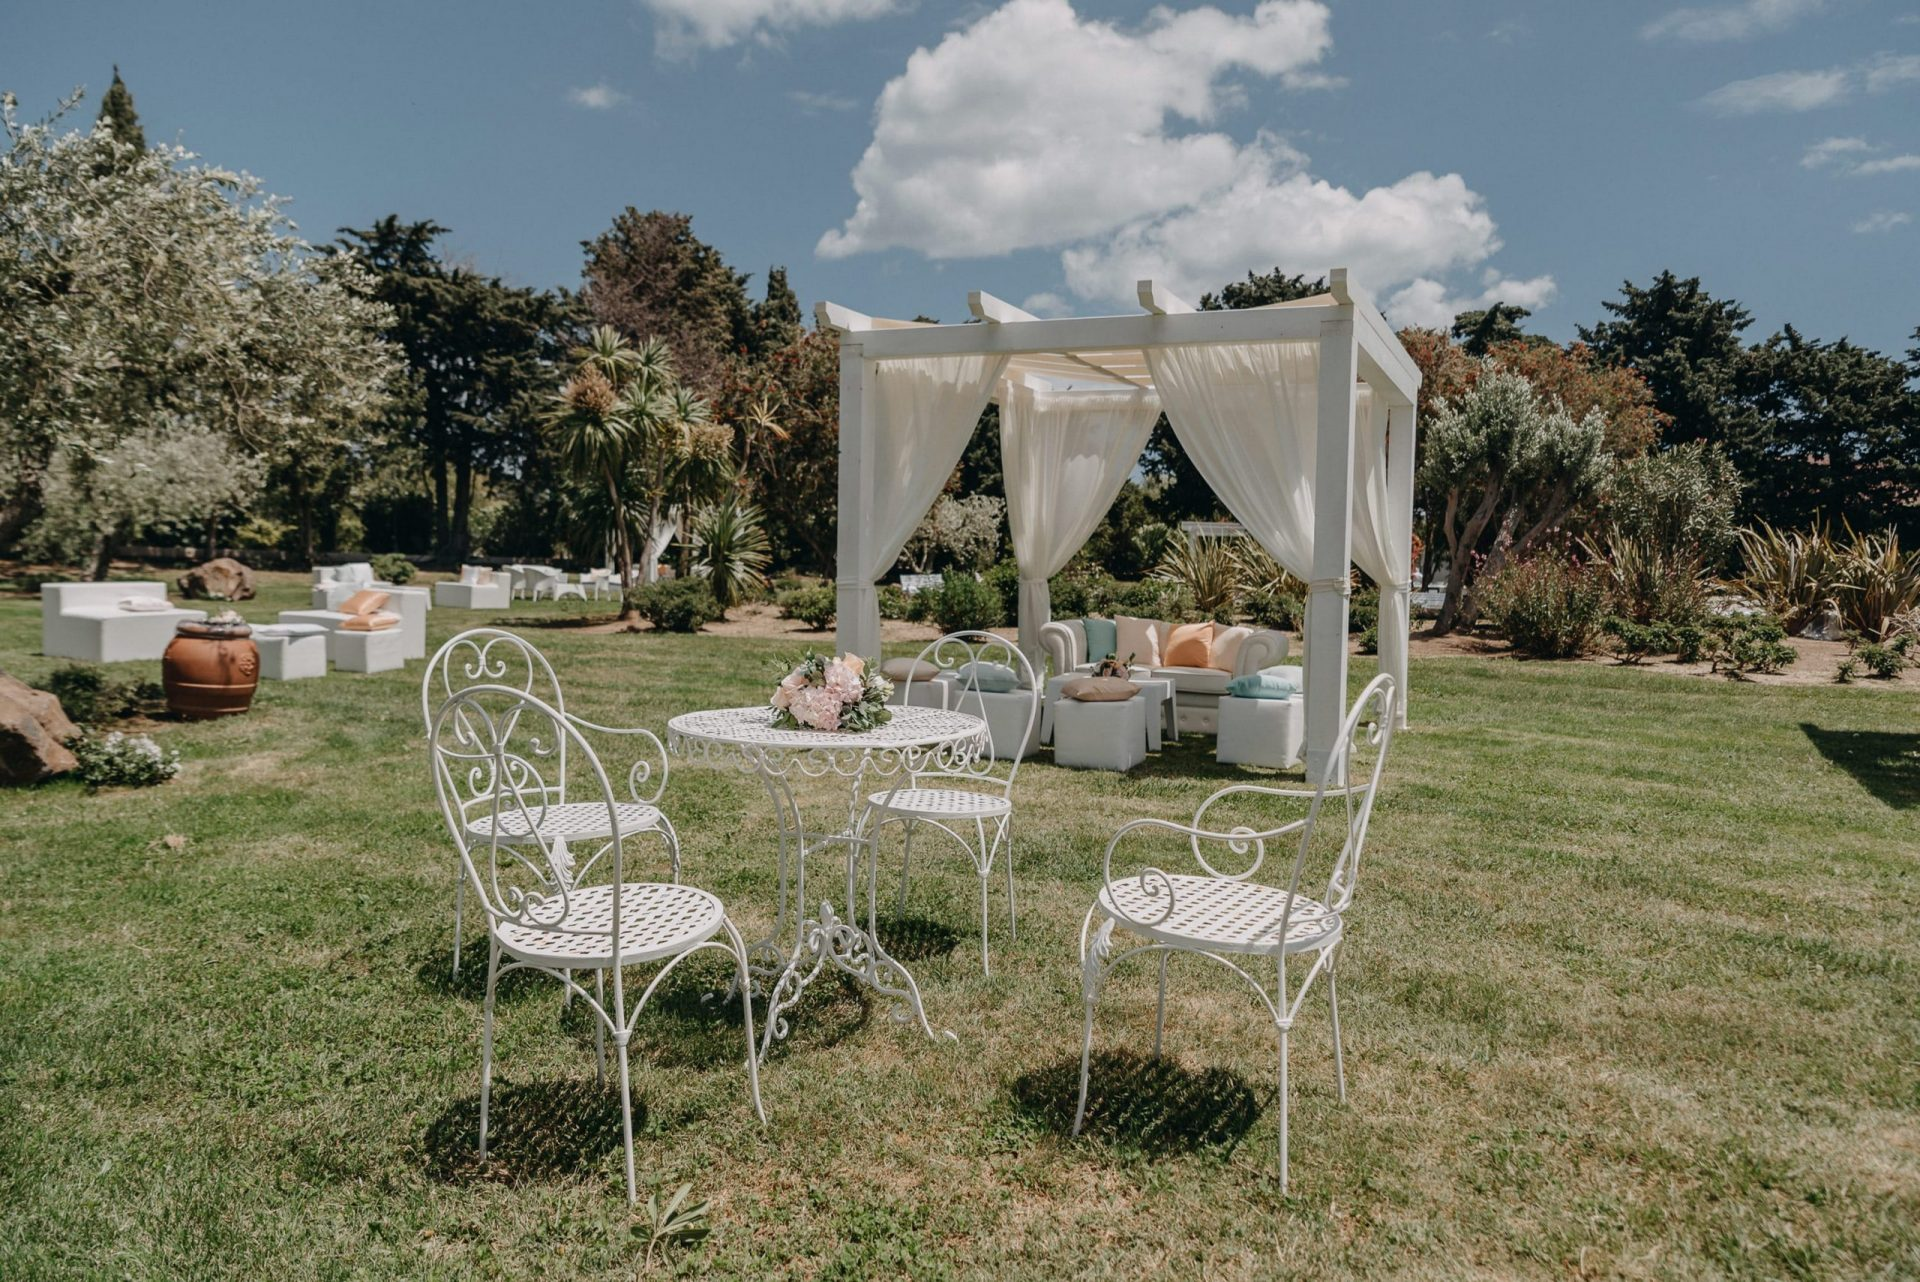 Giacomo and Federica, wedding lounge area